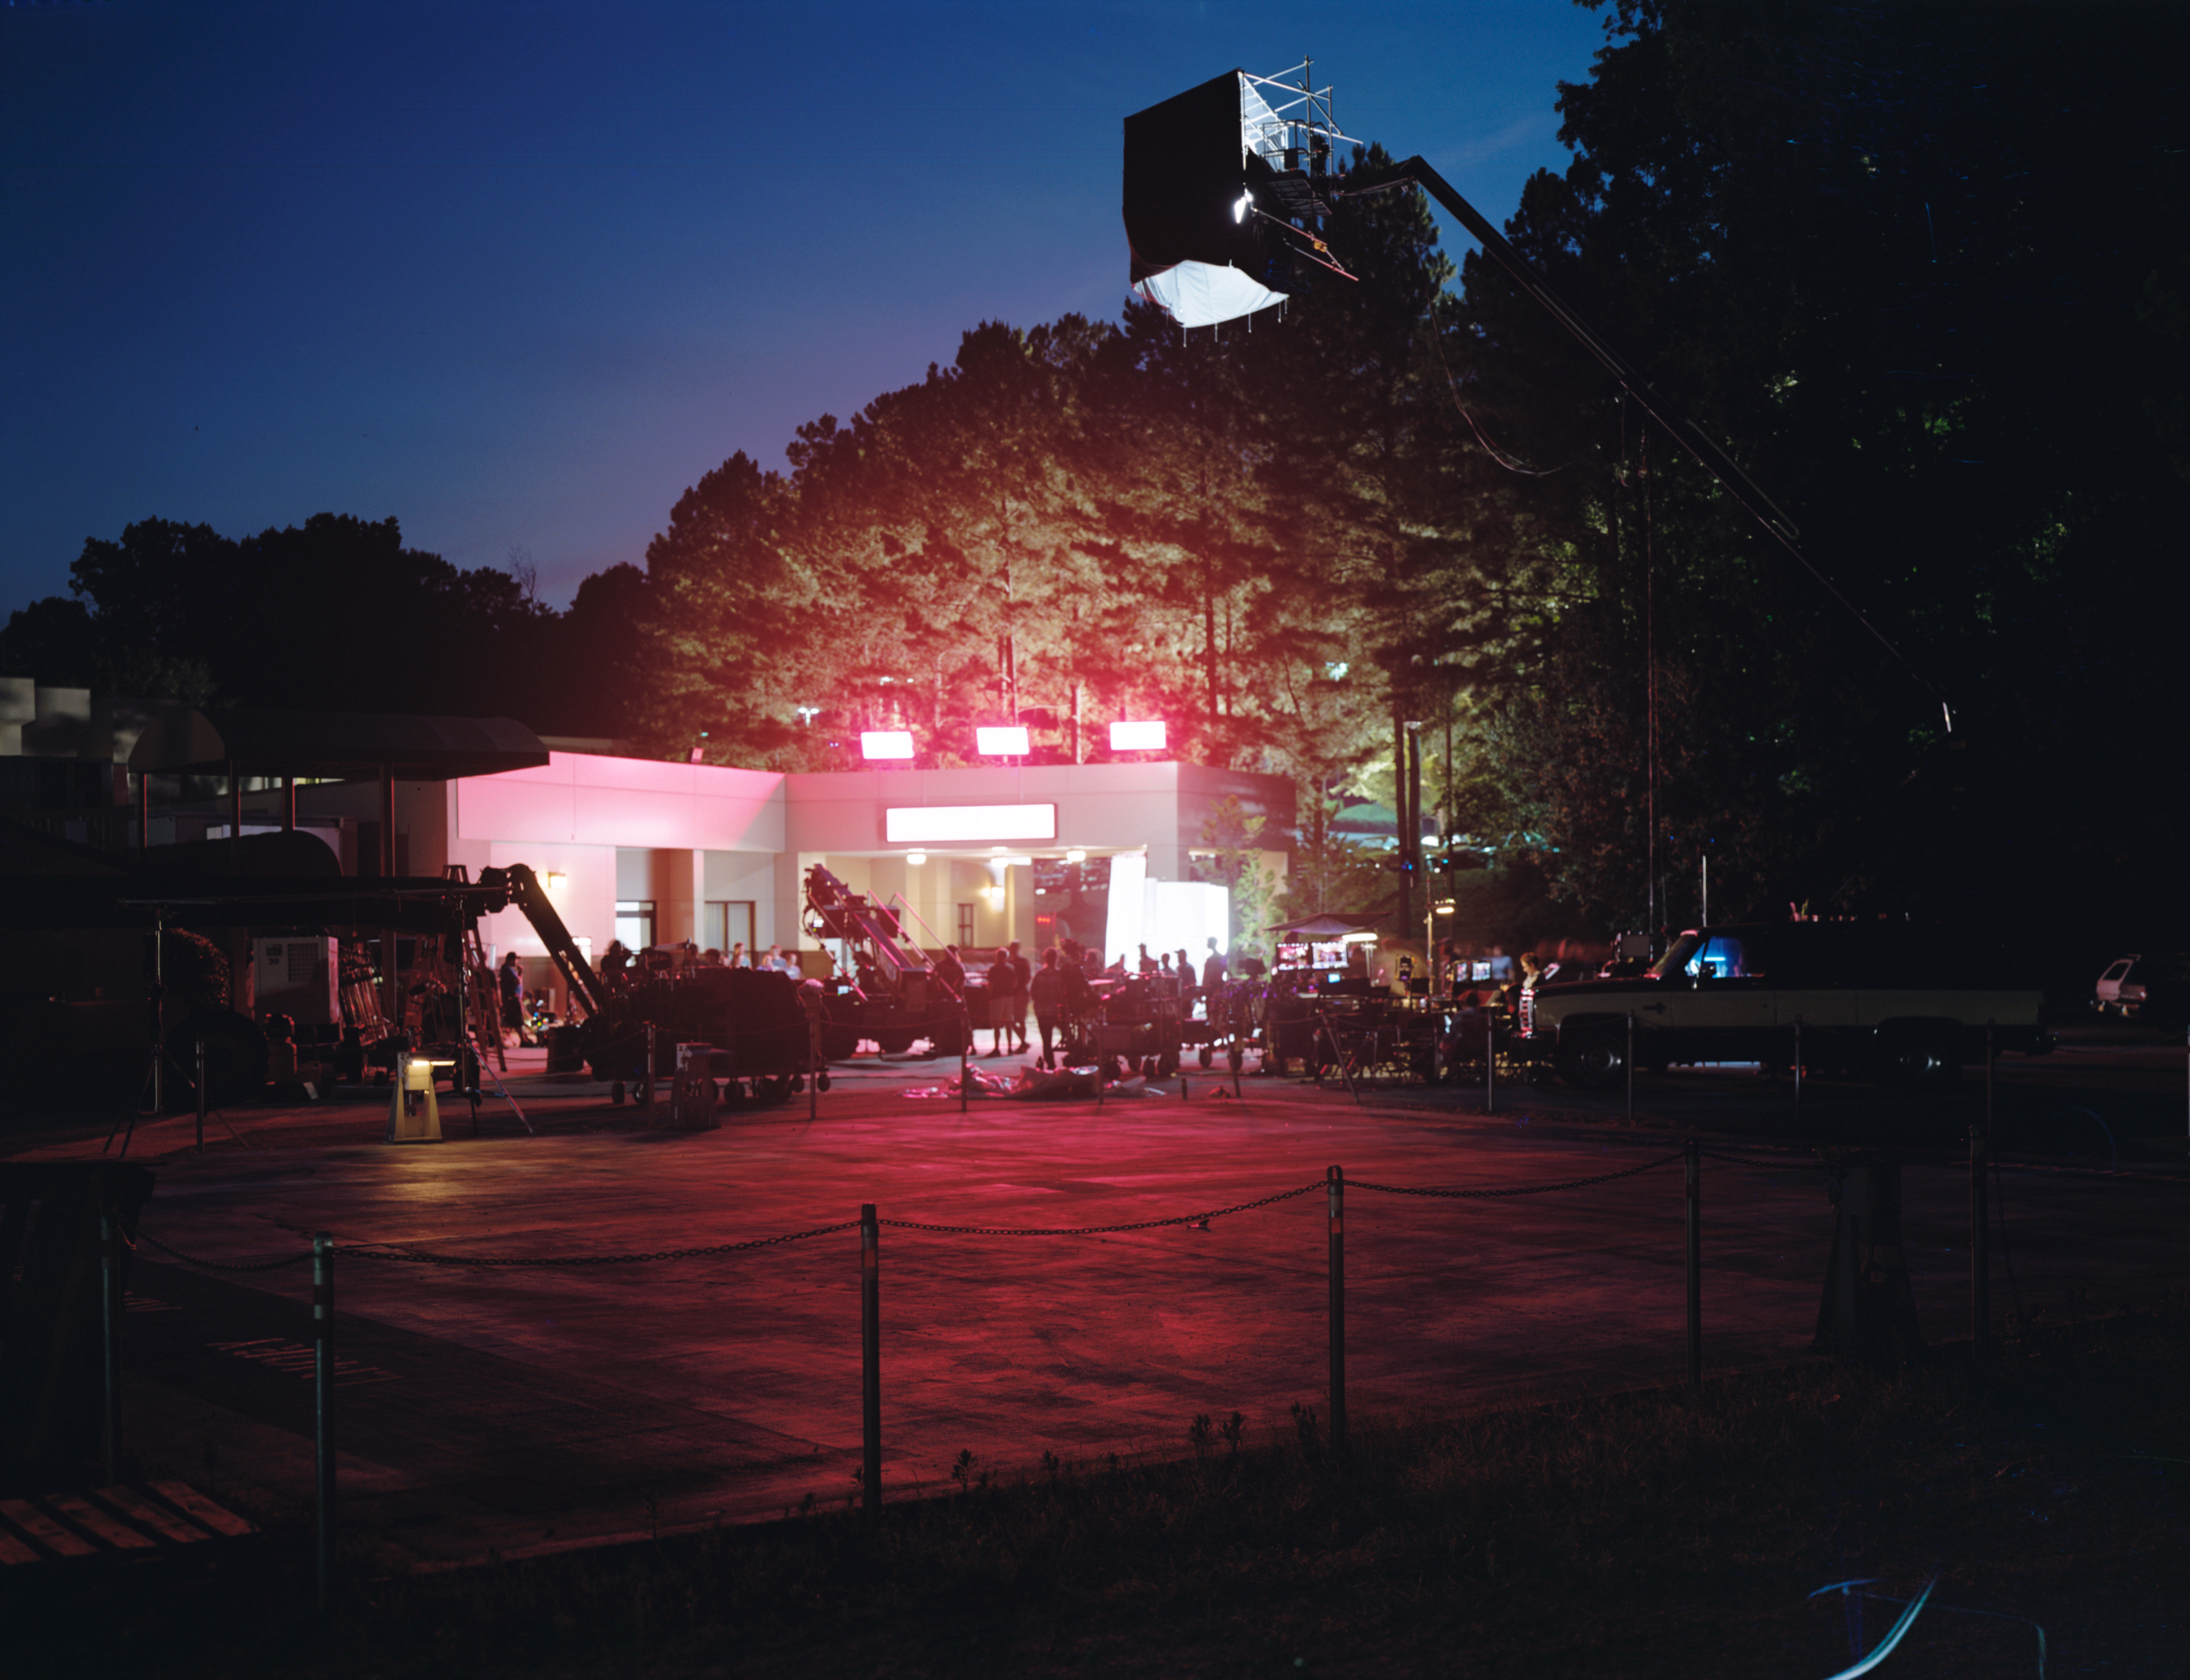 Lights and cameras on the set of Netflix's 'Stranger Things' season 3, filmed on location in Georgia.